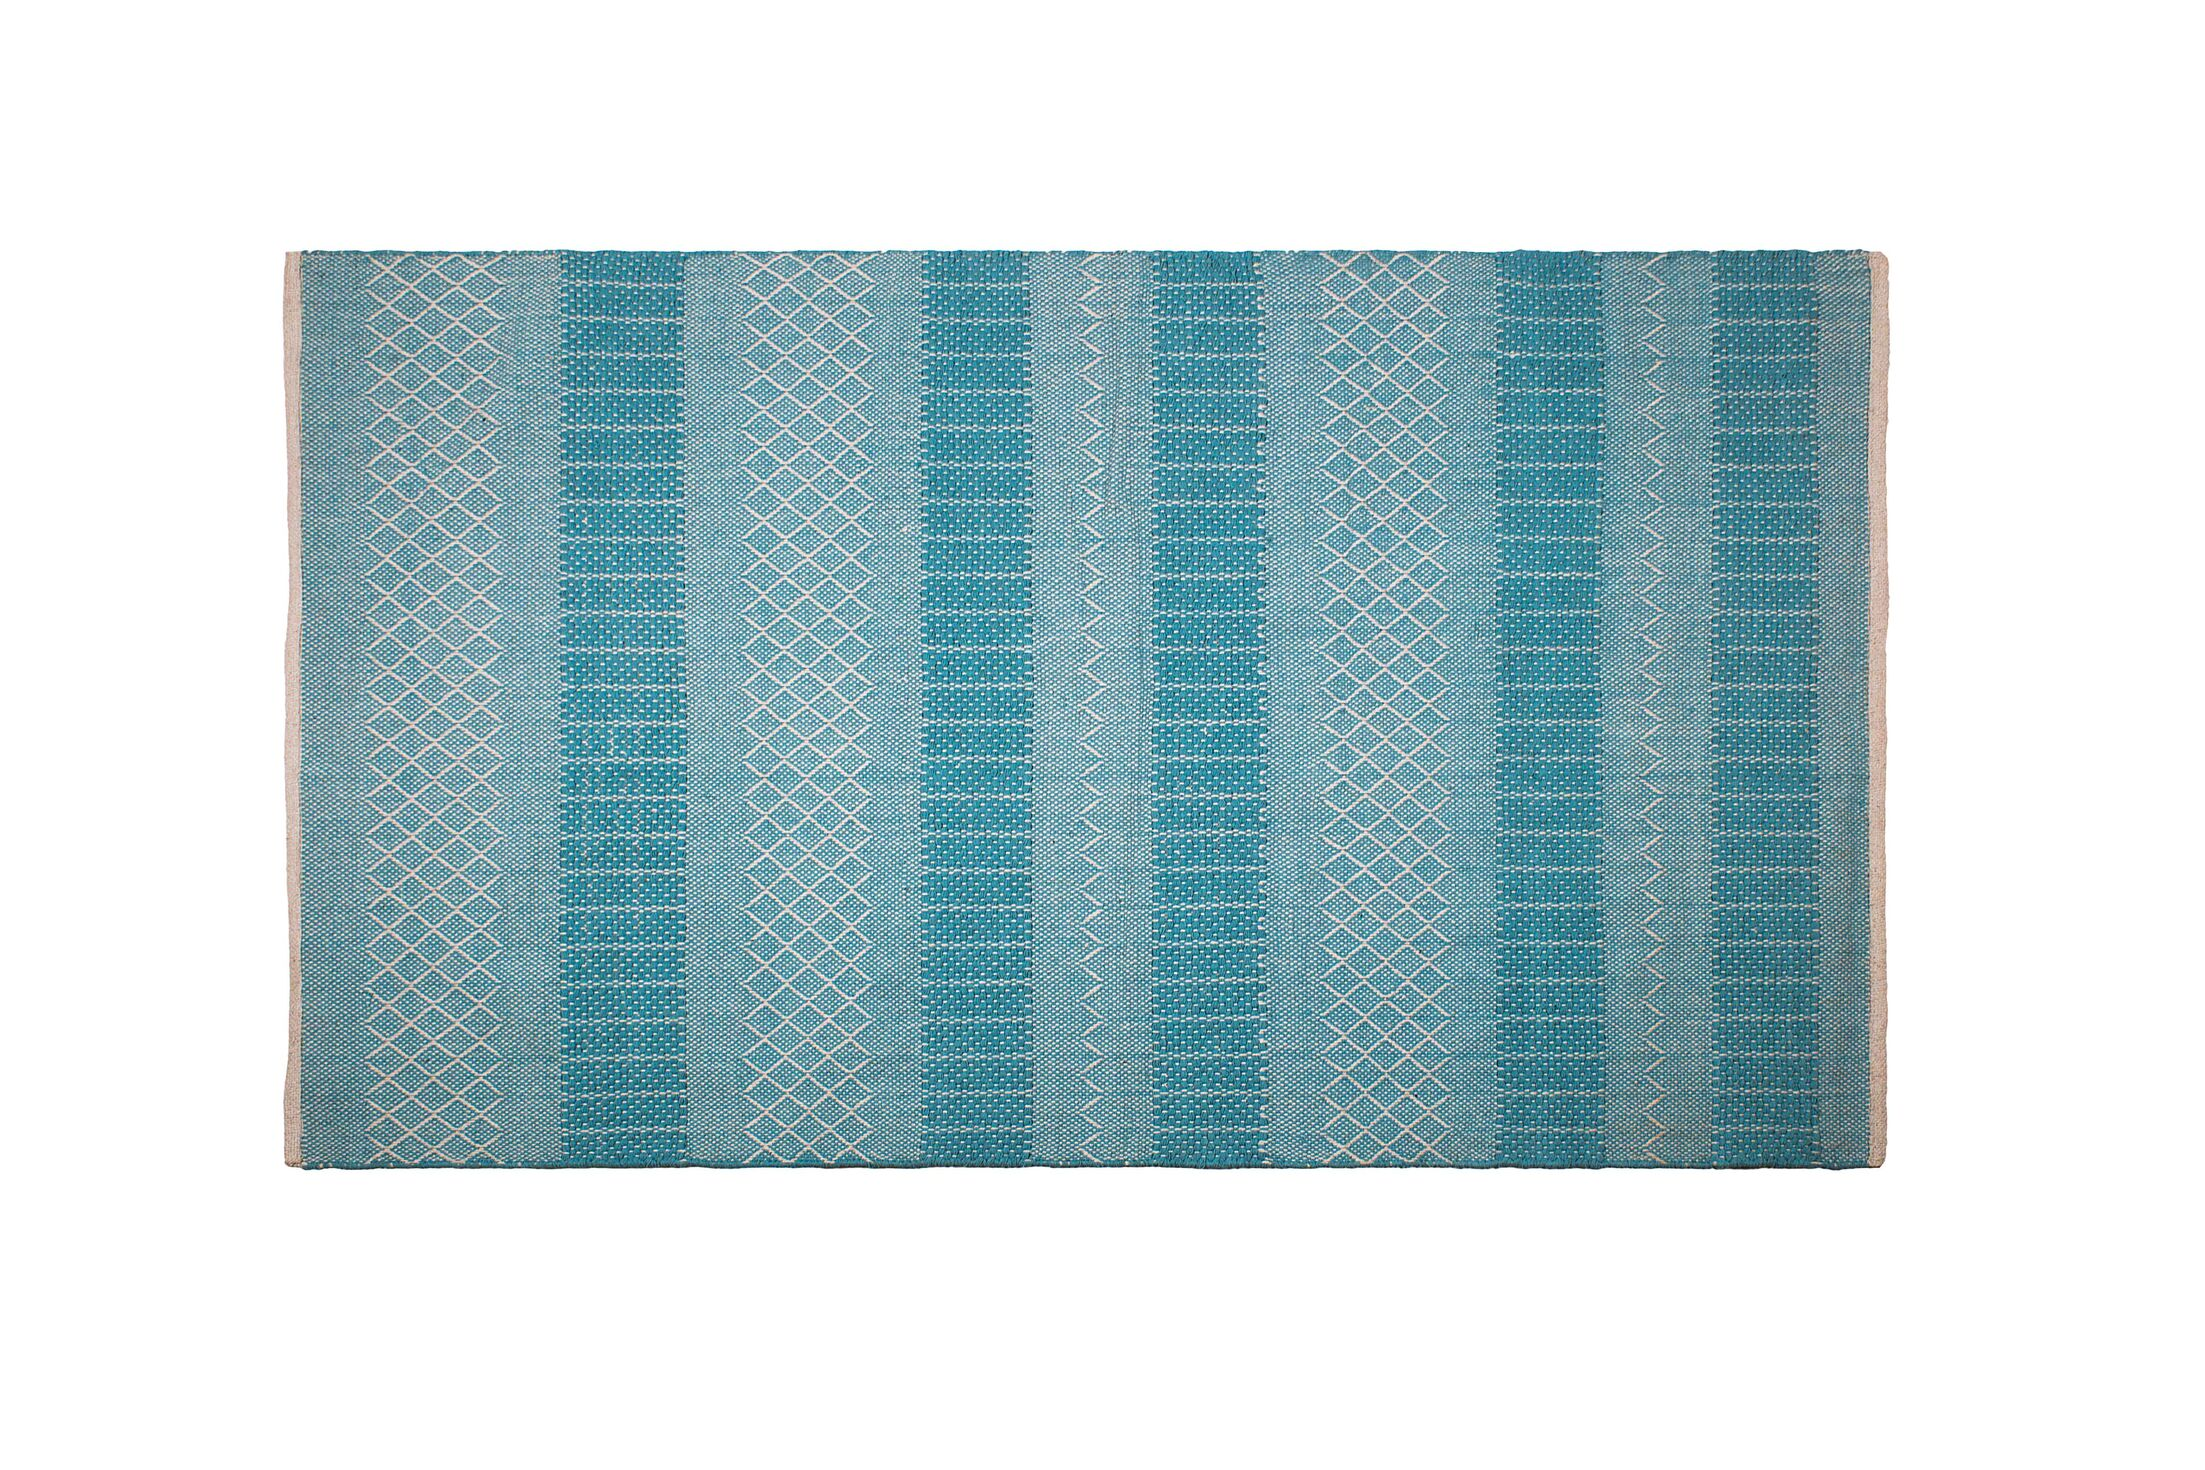 Chapdelaine Hand-Woven Cotton Sky Blue Rug Rug Size: Rectangle 6' x 9'